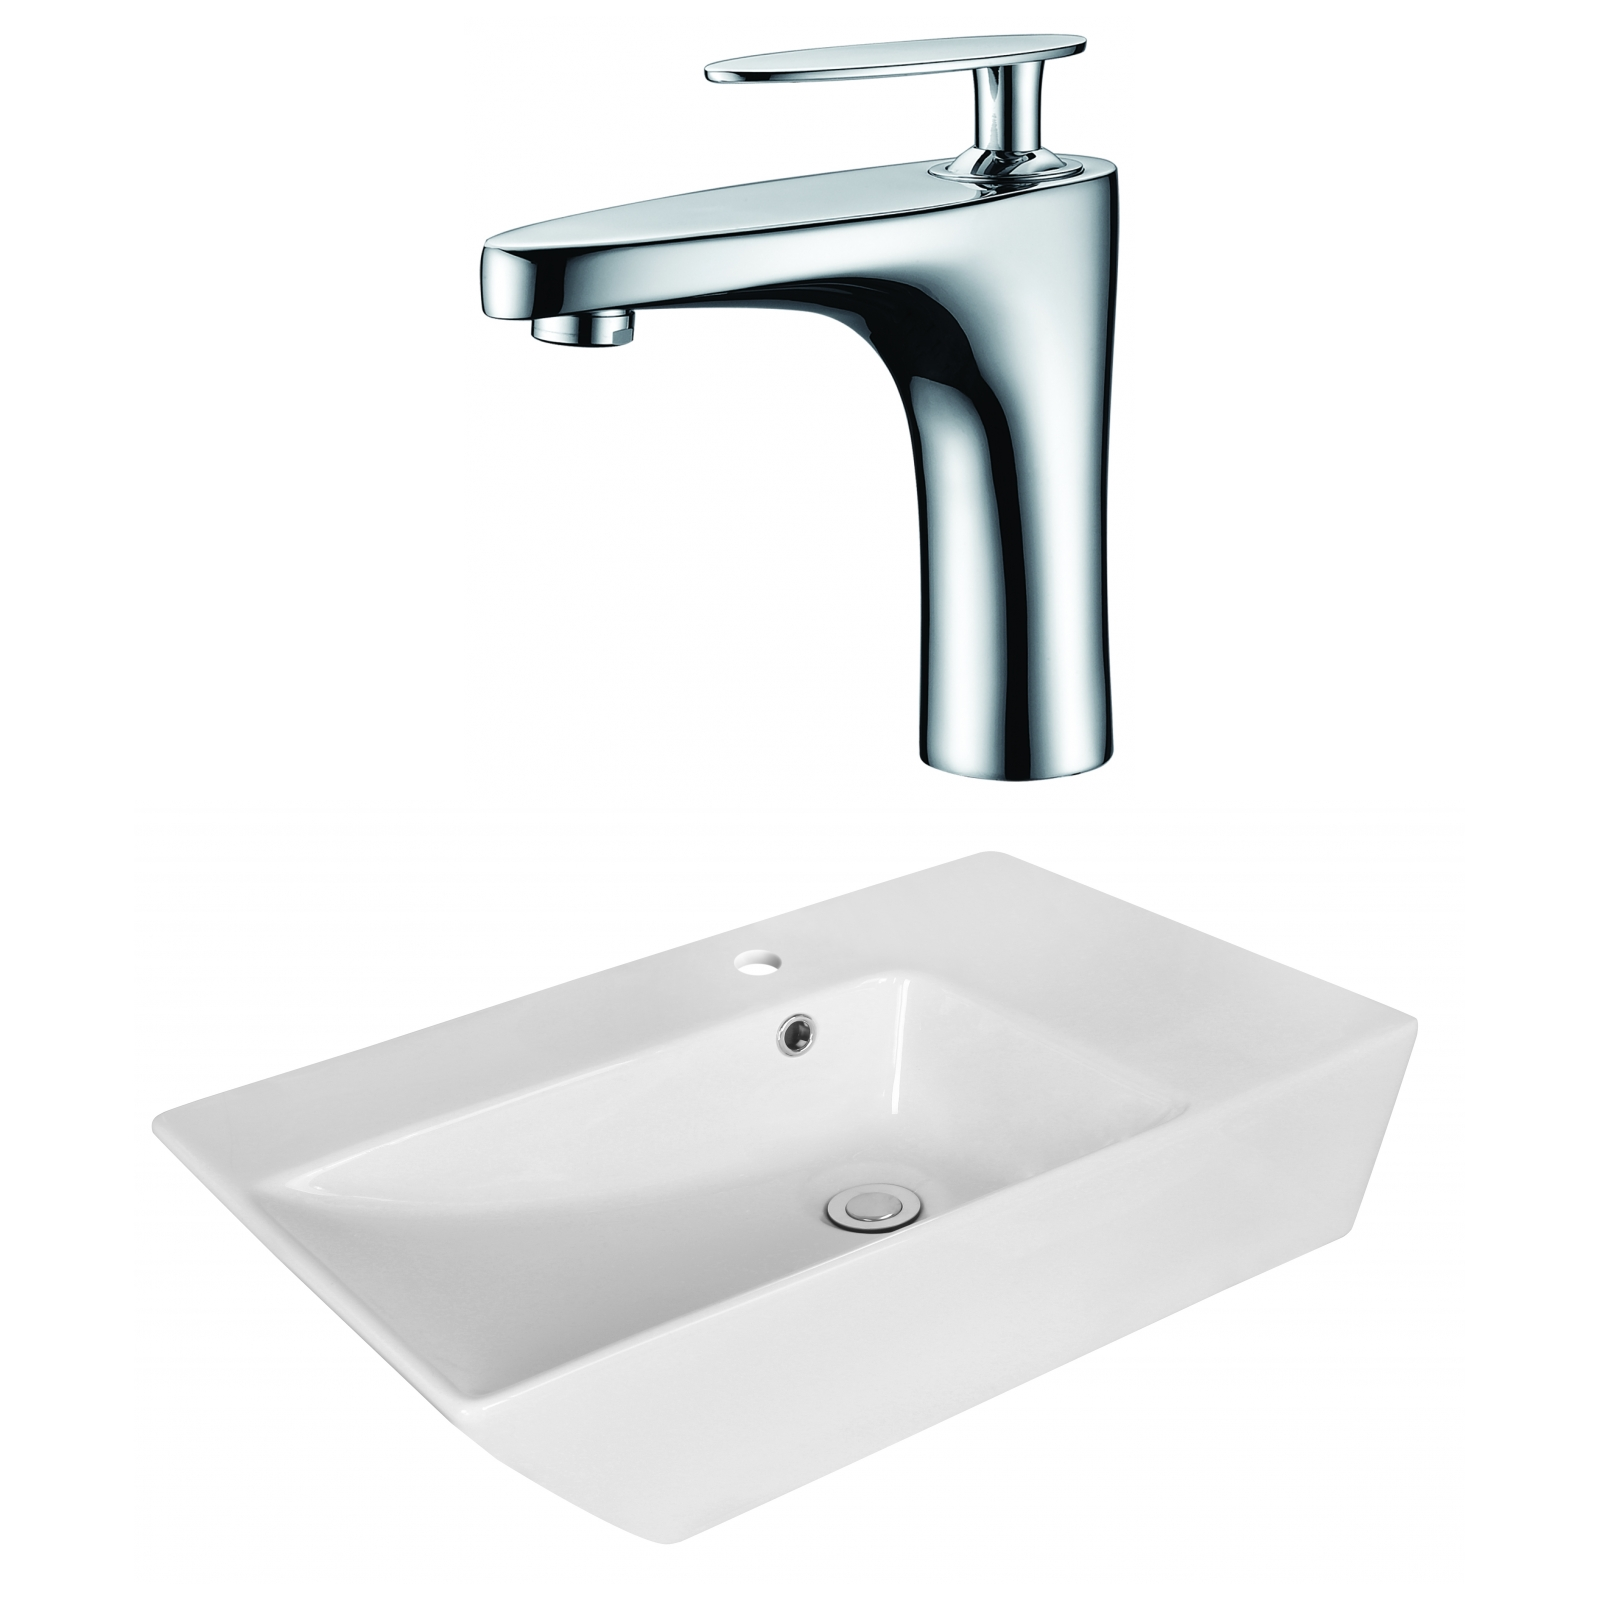 Above counter bathroom sinks canada - W Above Counter White Vessel Set For 1 Hole Center Faucet Faucet Included Ai 18070